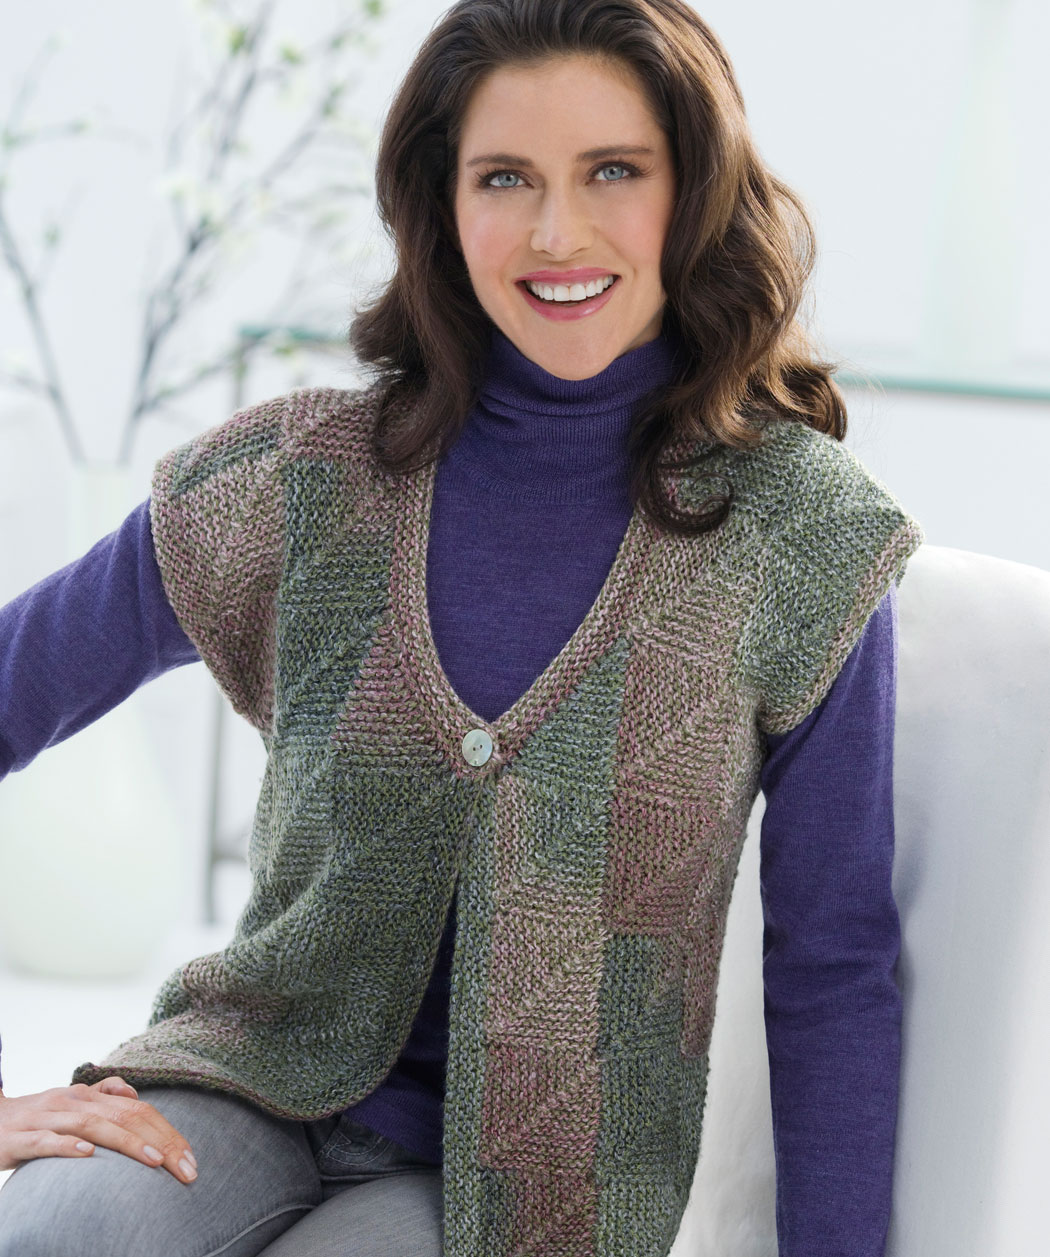 Knitting Sweater Patterns For Women : Free Sweater Vest Knitting Patterns images